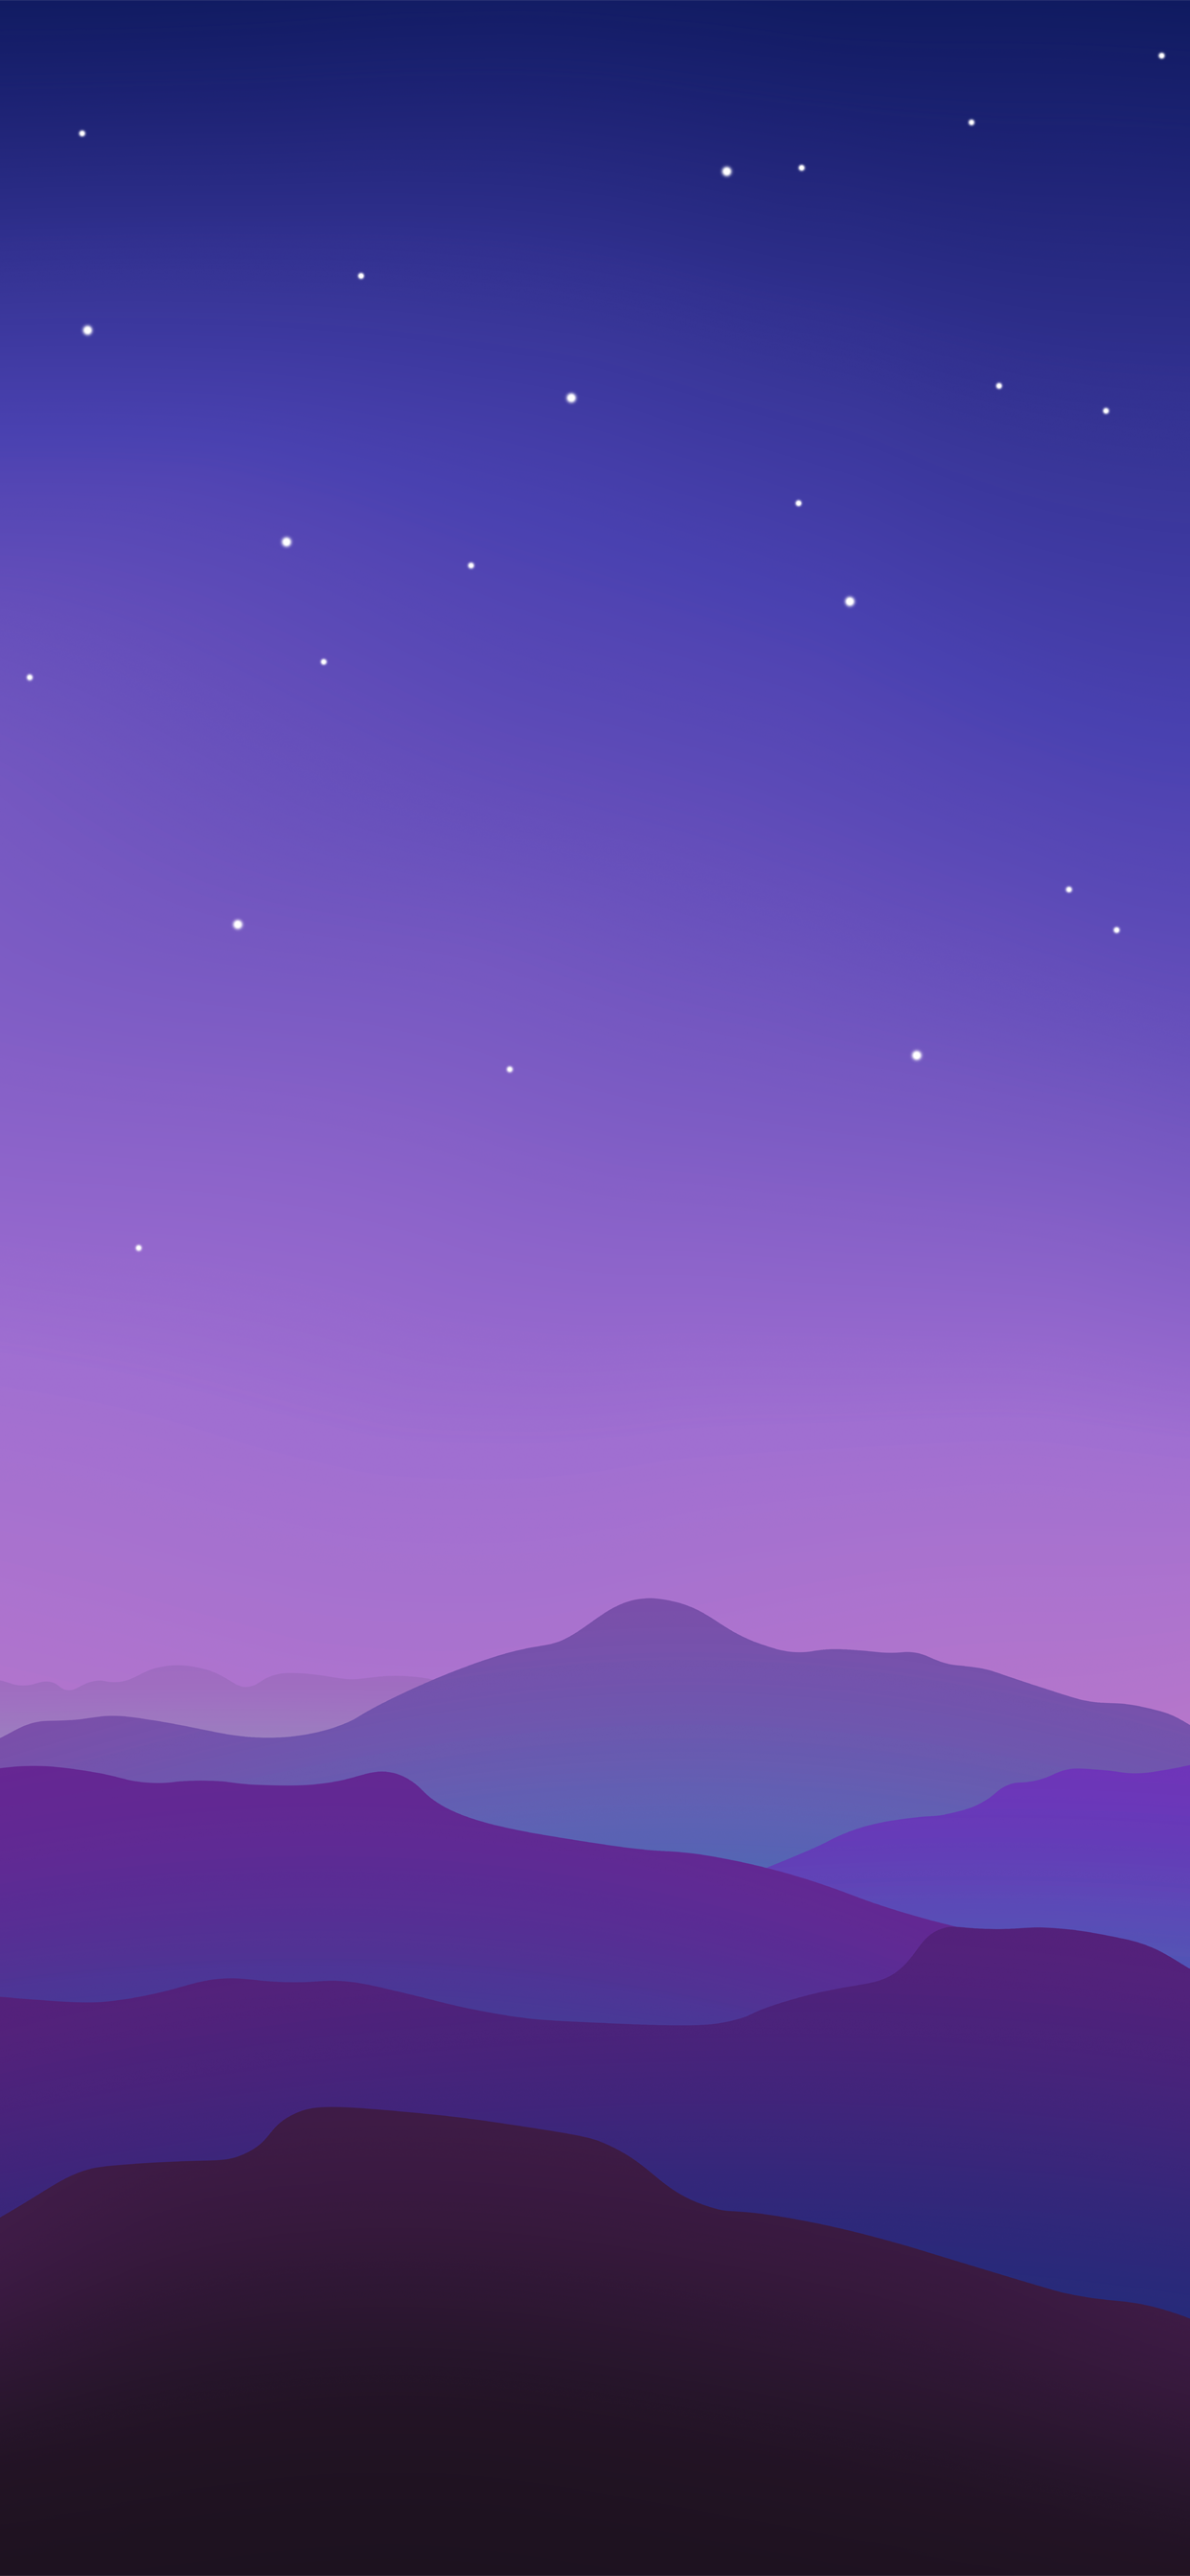 Colorful vector landscape wallpapers V23ByArthur1992aS